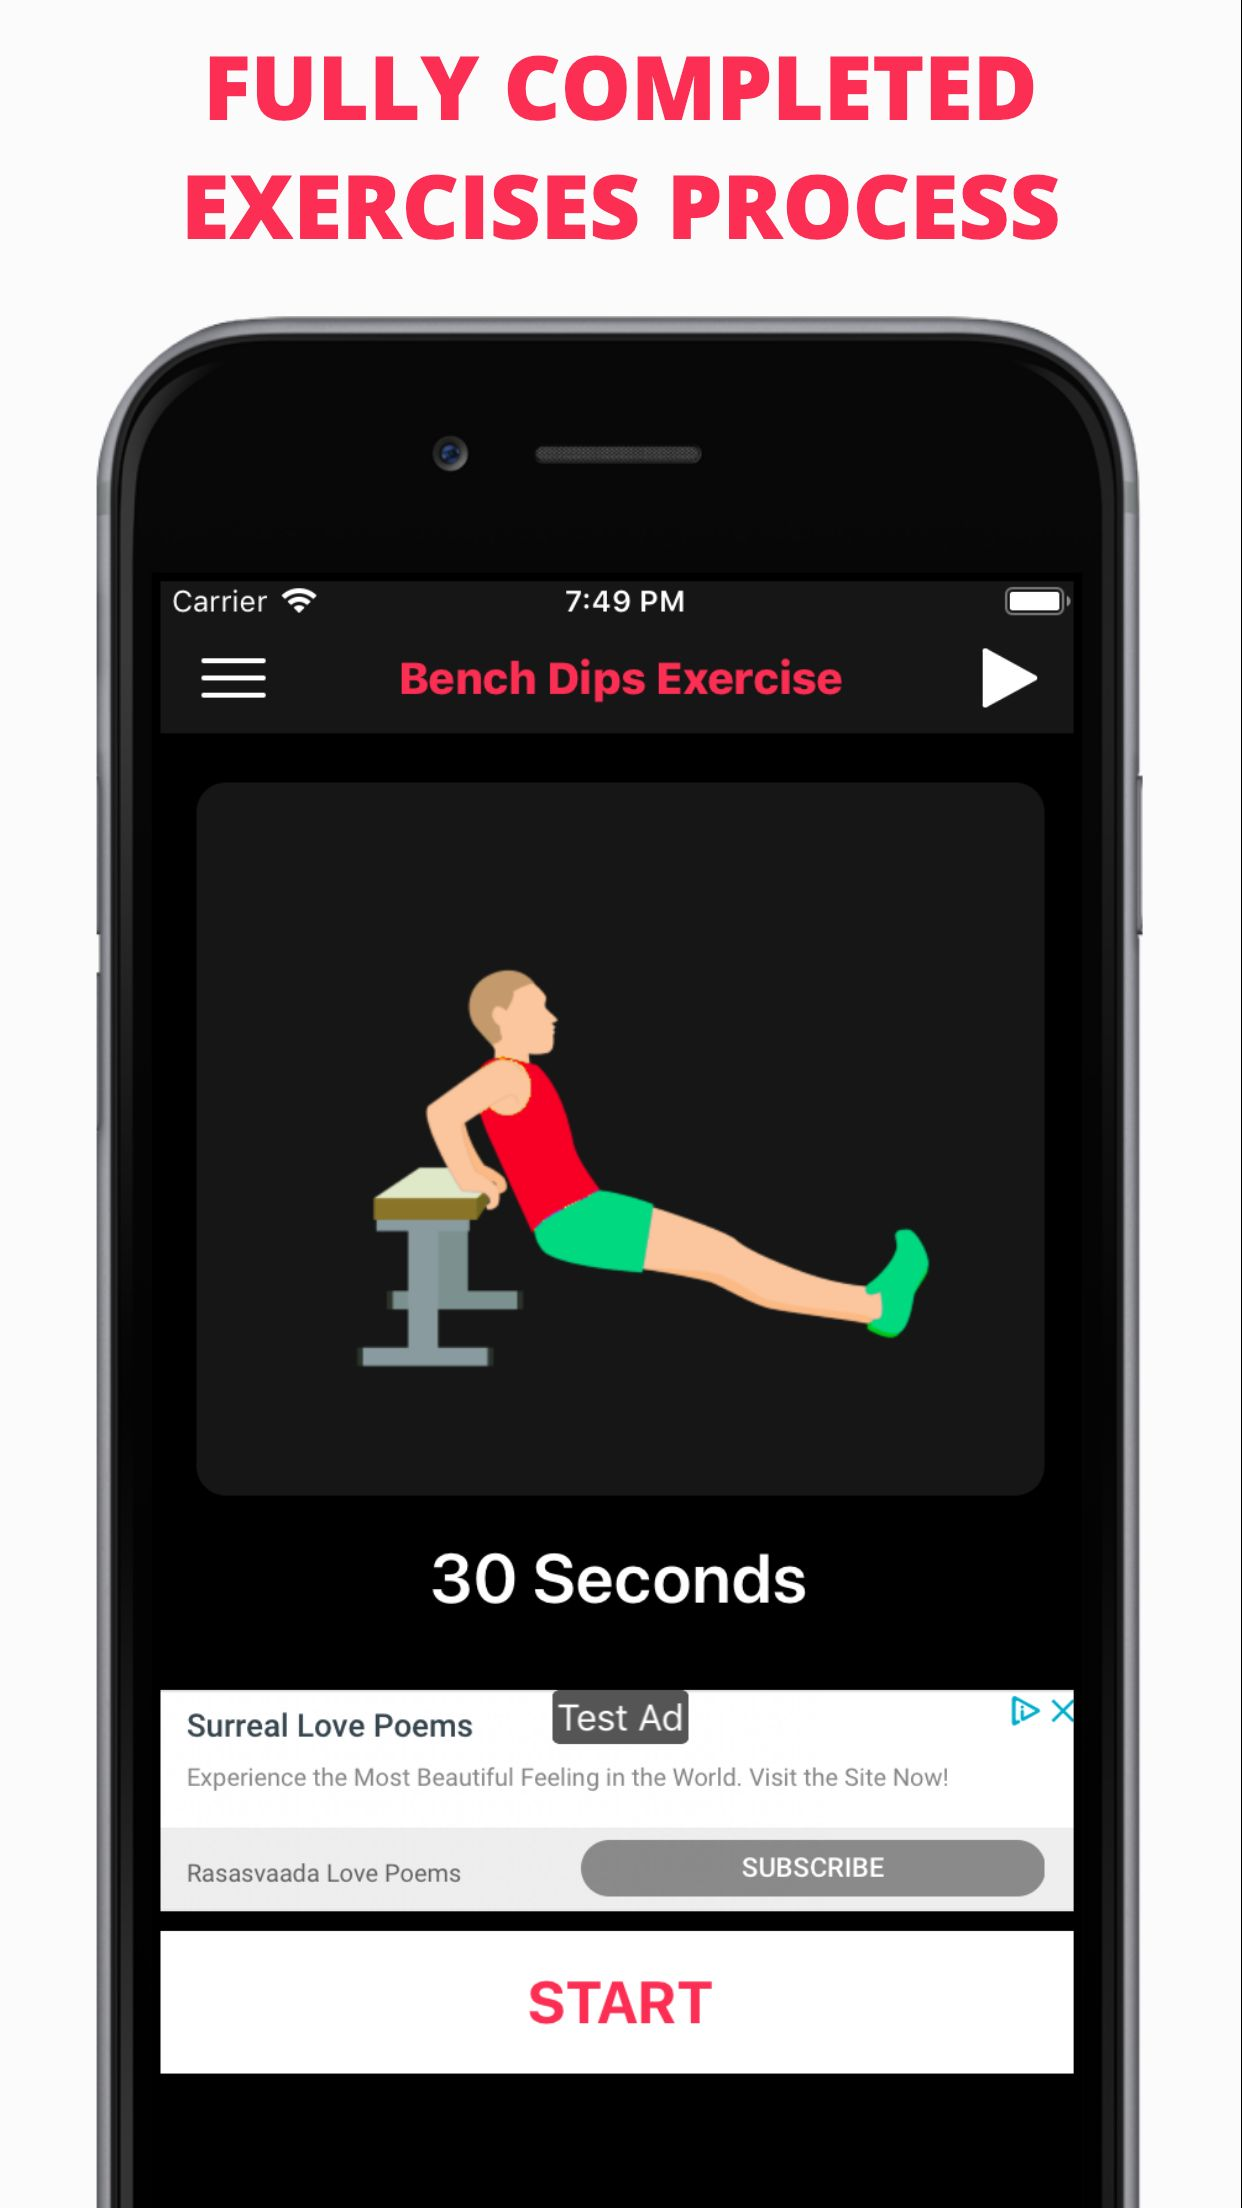 Easy Workout - iOS Fitness Application  Screenshot 9